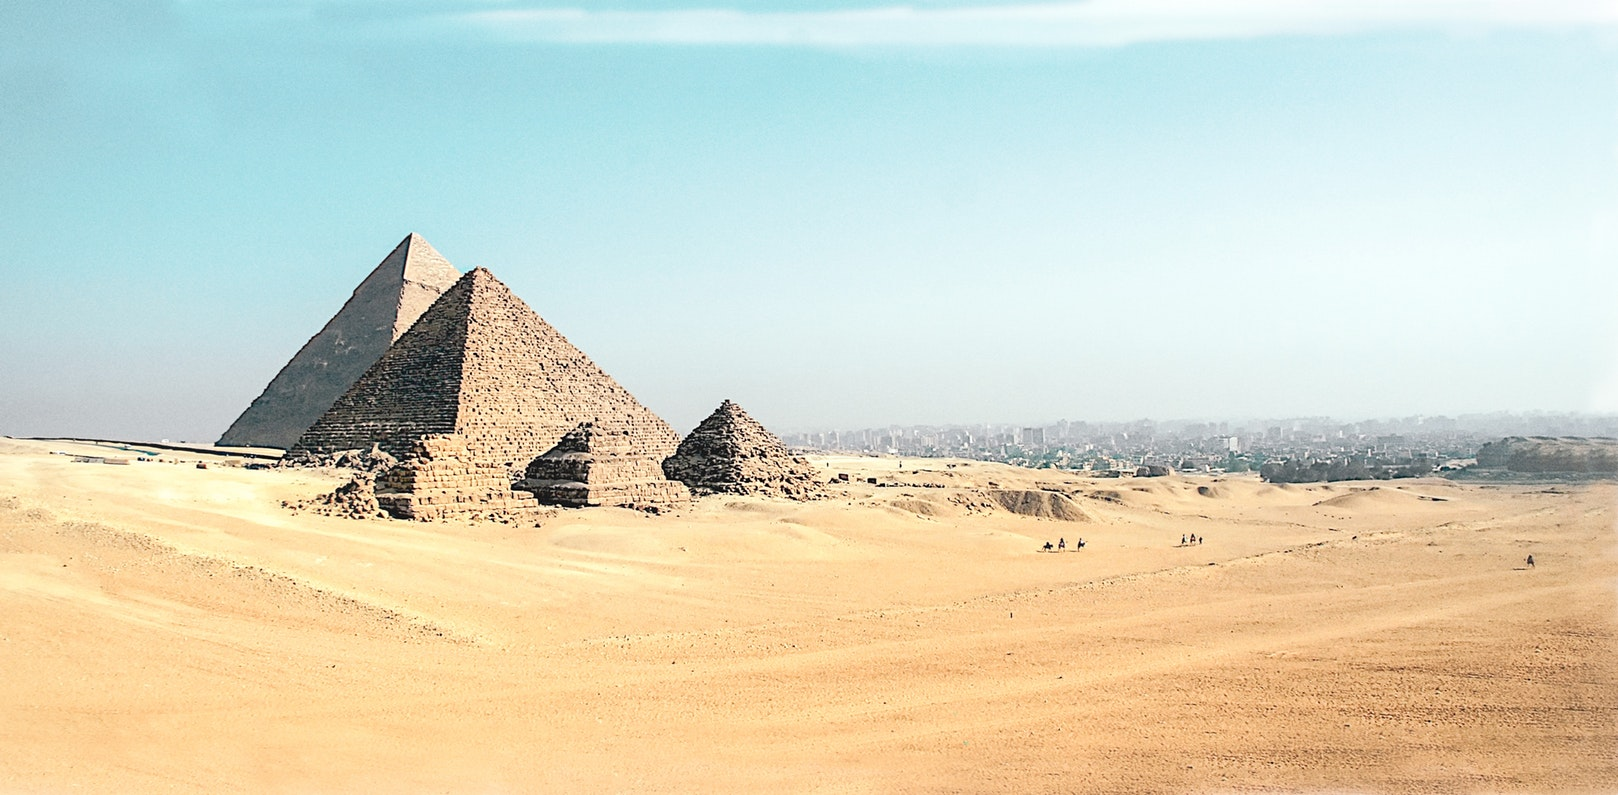 Pyramide in Egypte